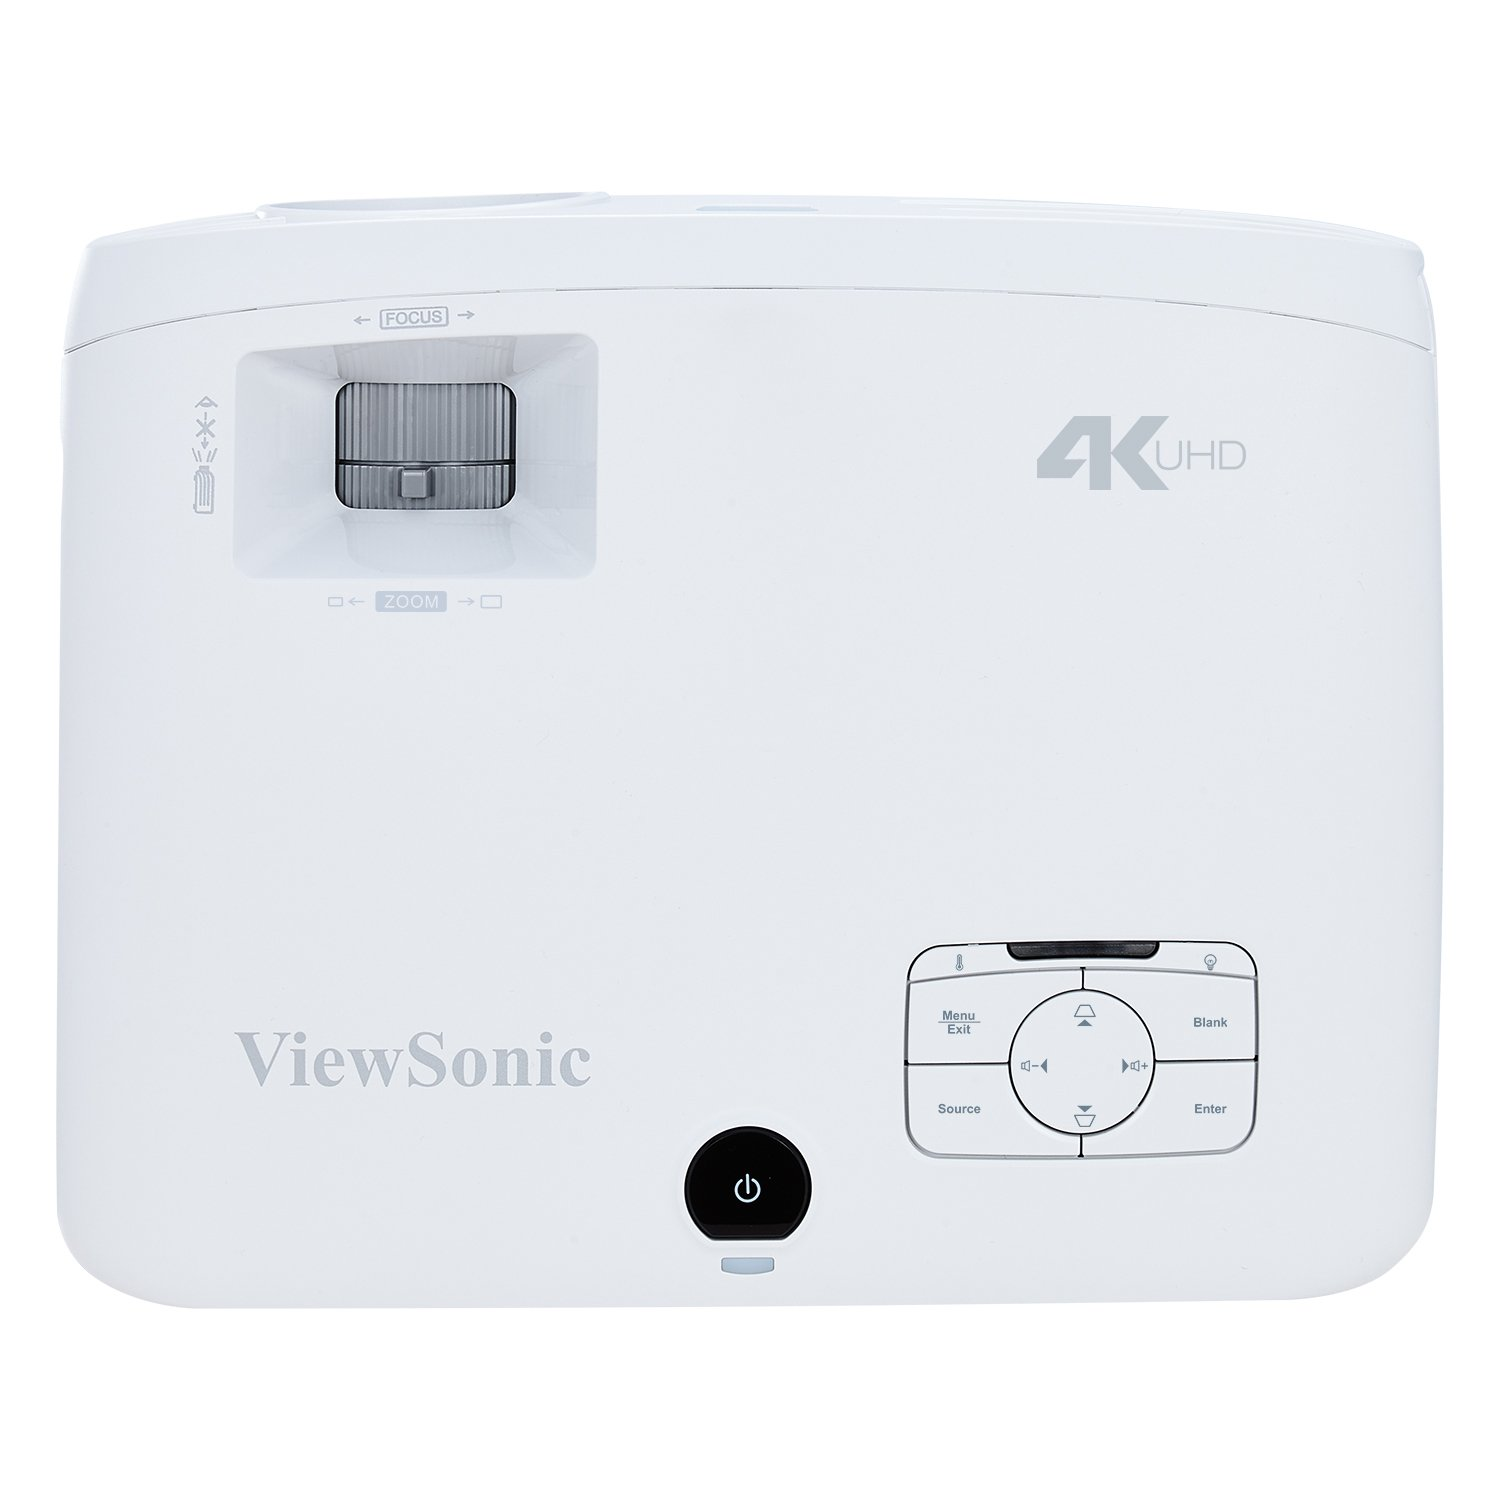 ViewSonic True 4K Projector with 3500 Lumens HDR Support and Dual HDMI